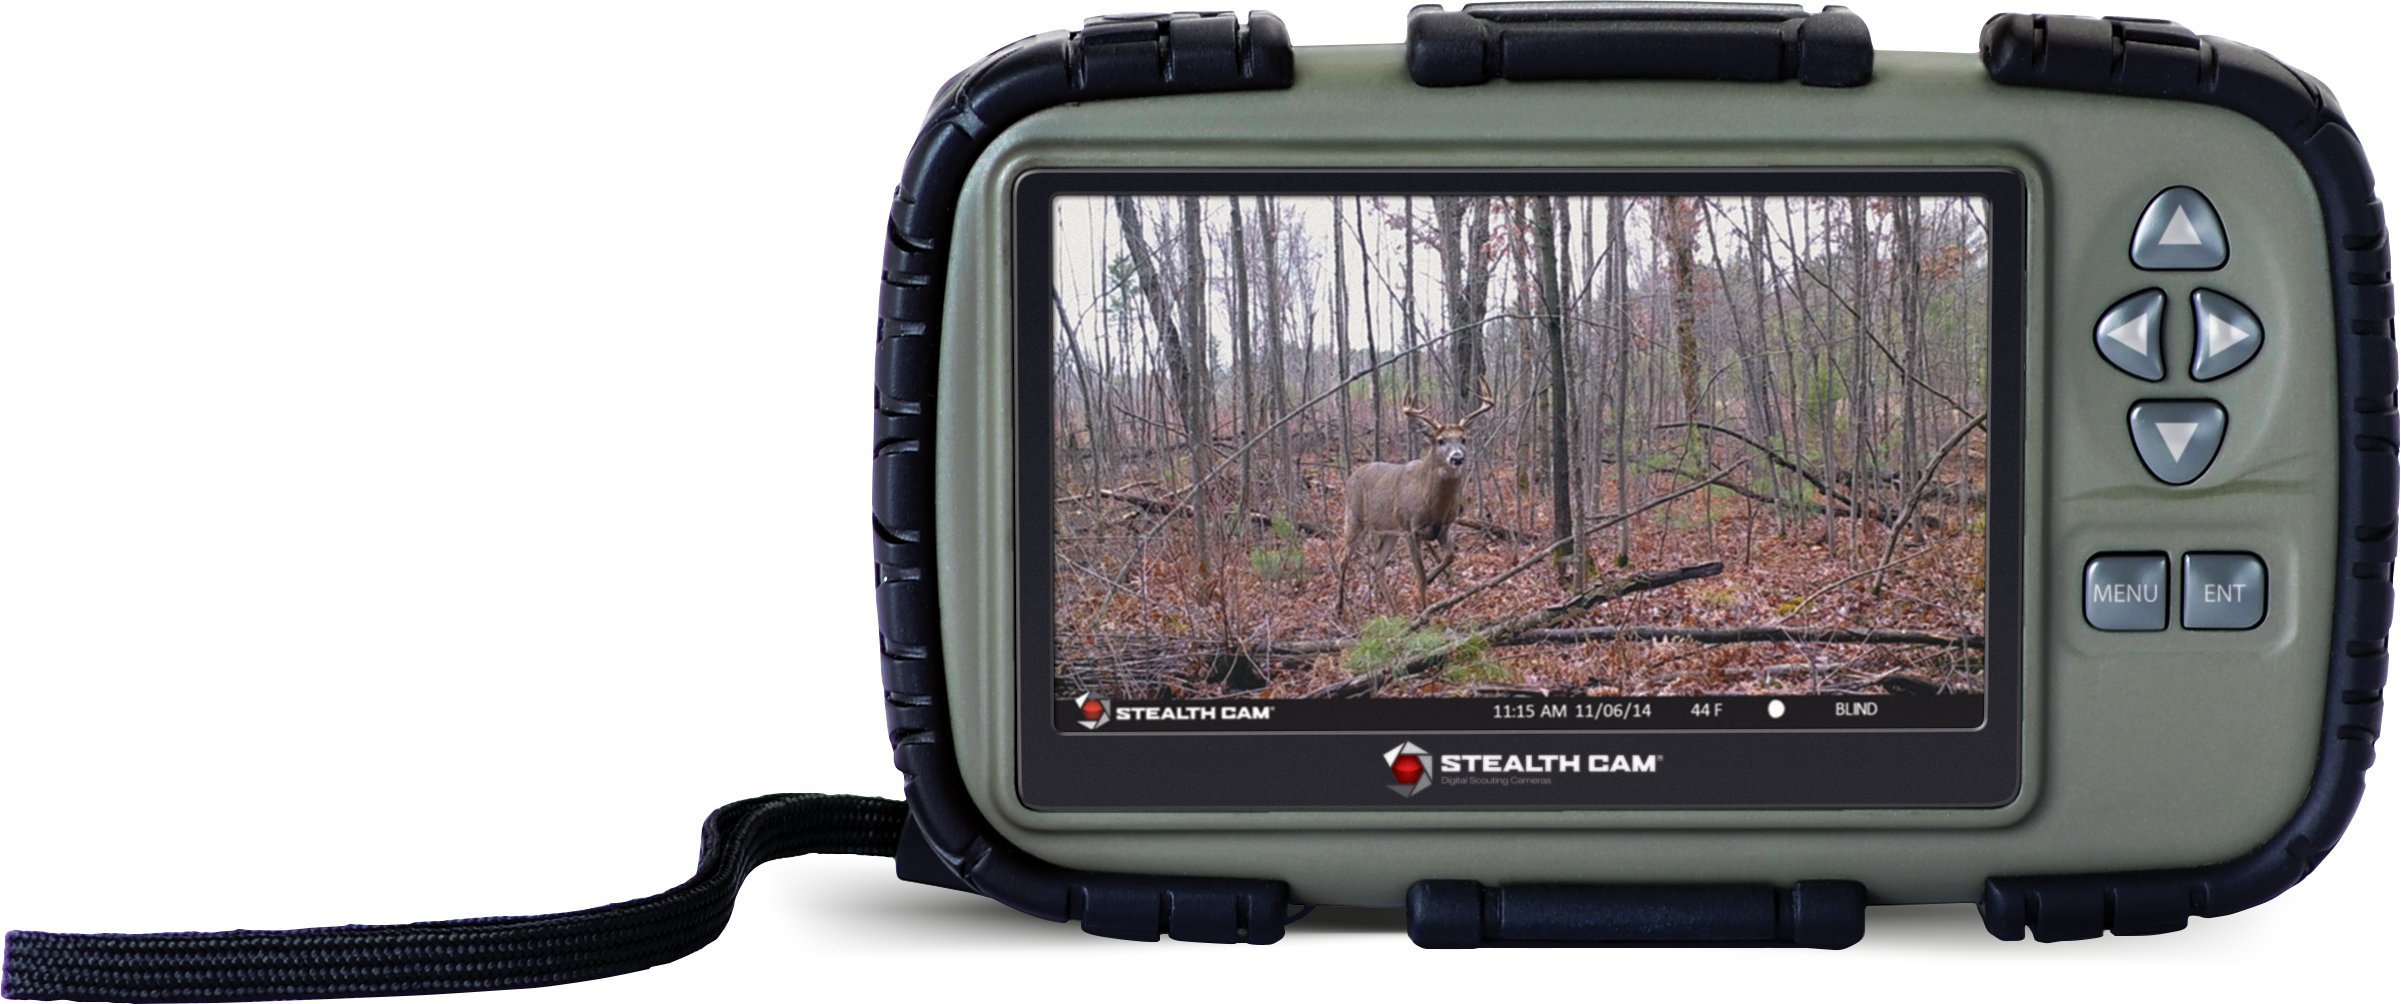 Stealth Cam SD Card Reader and Viewer with 4.3'' LCD by Stealth Cam (Image #1)